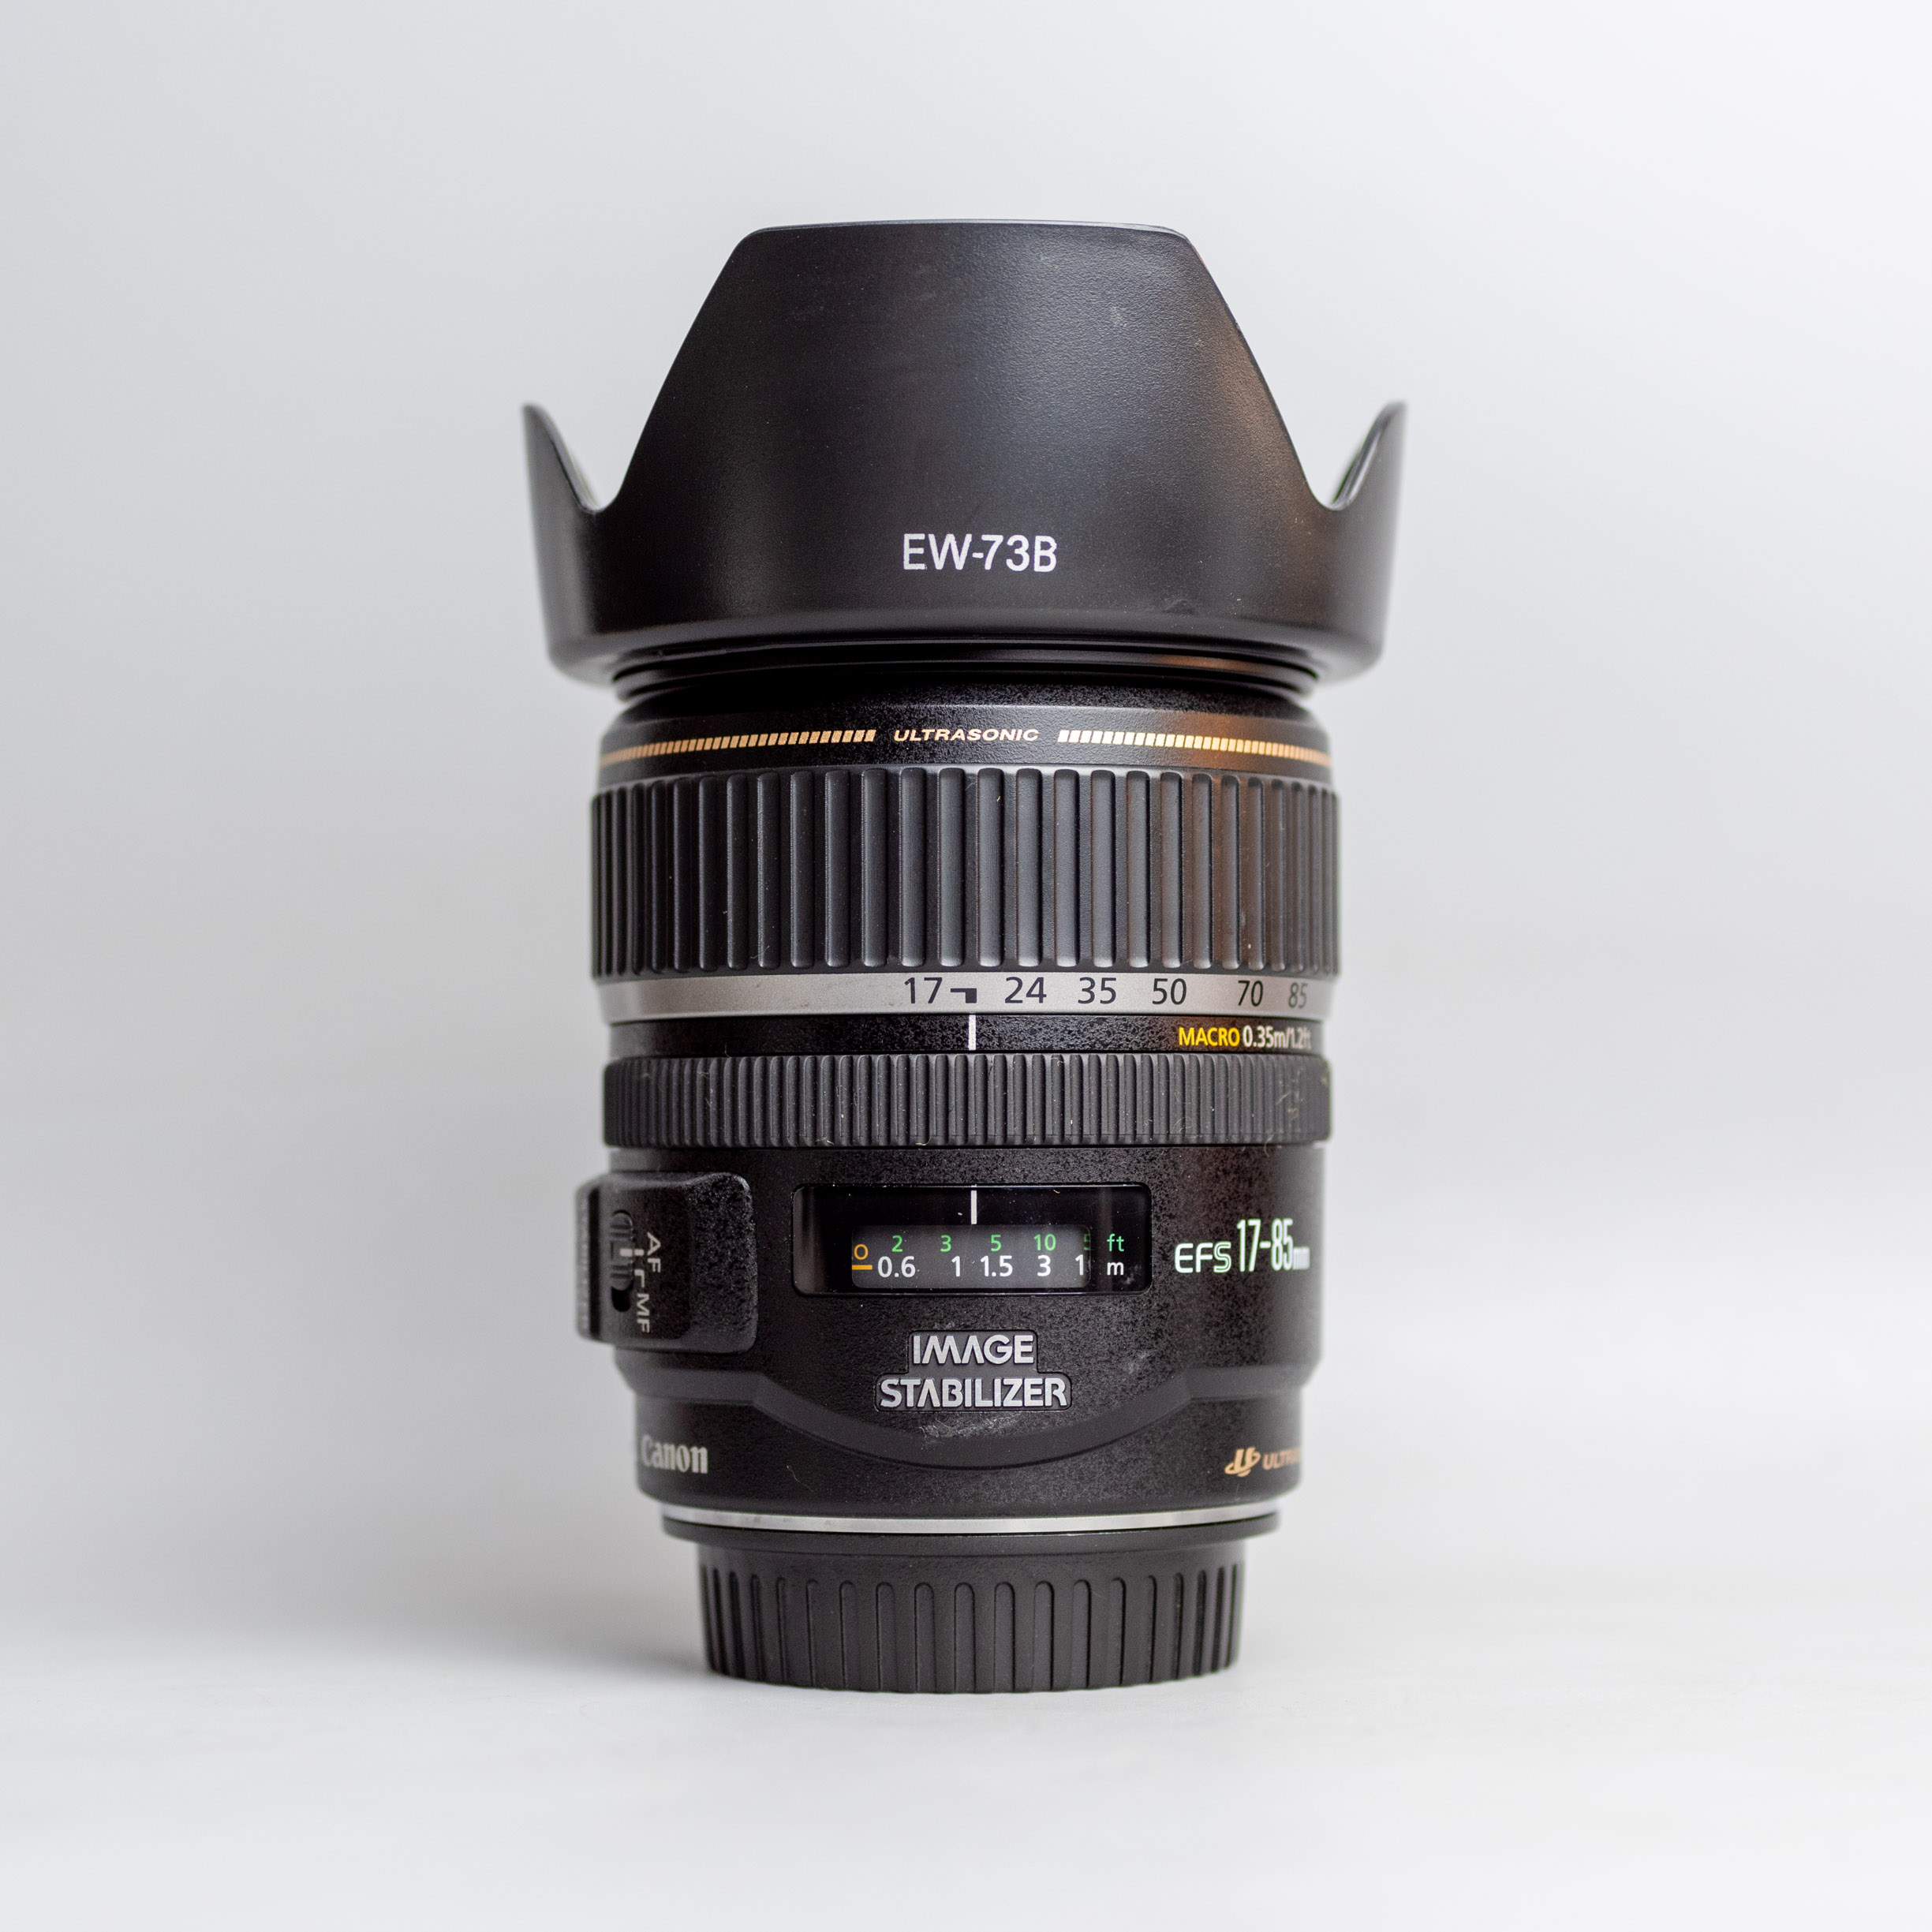 canon-17-85mm-f4-5-6-af-ef-s-is-usm-17-85-4-5-6-18392